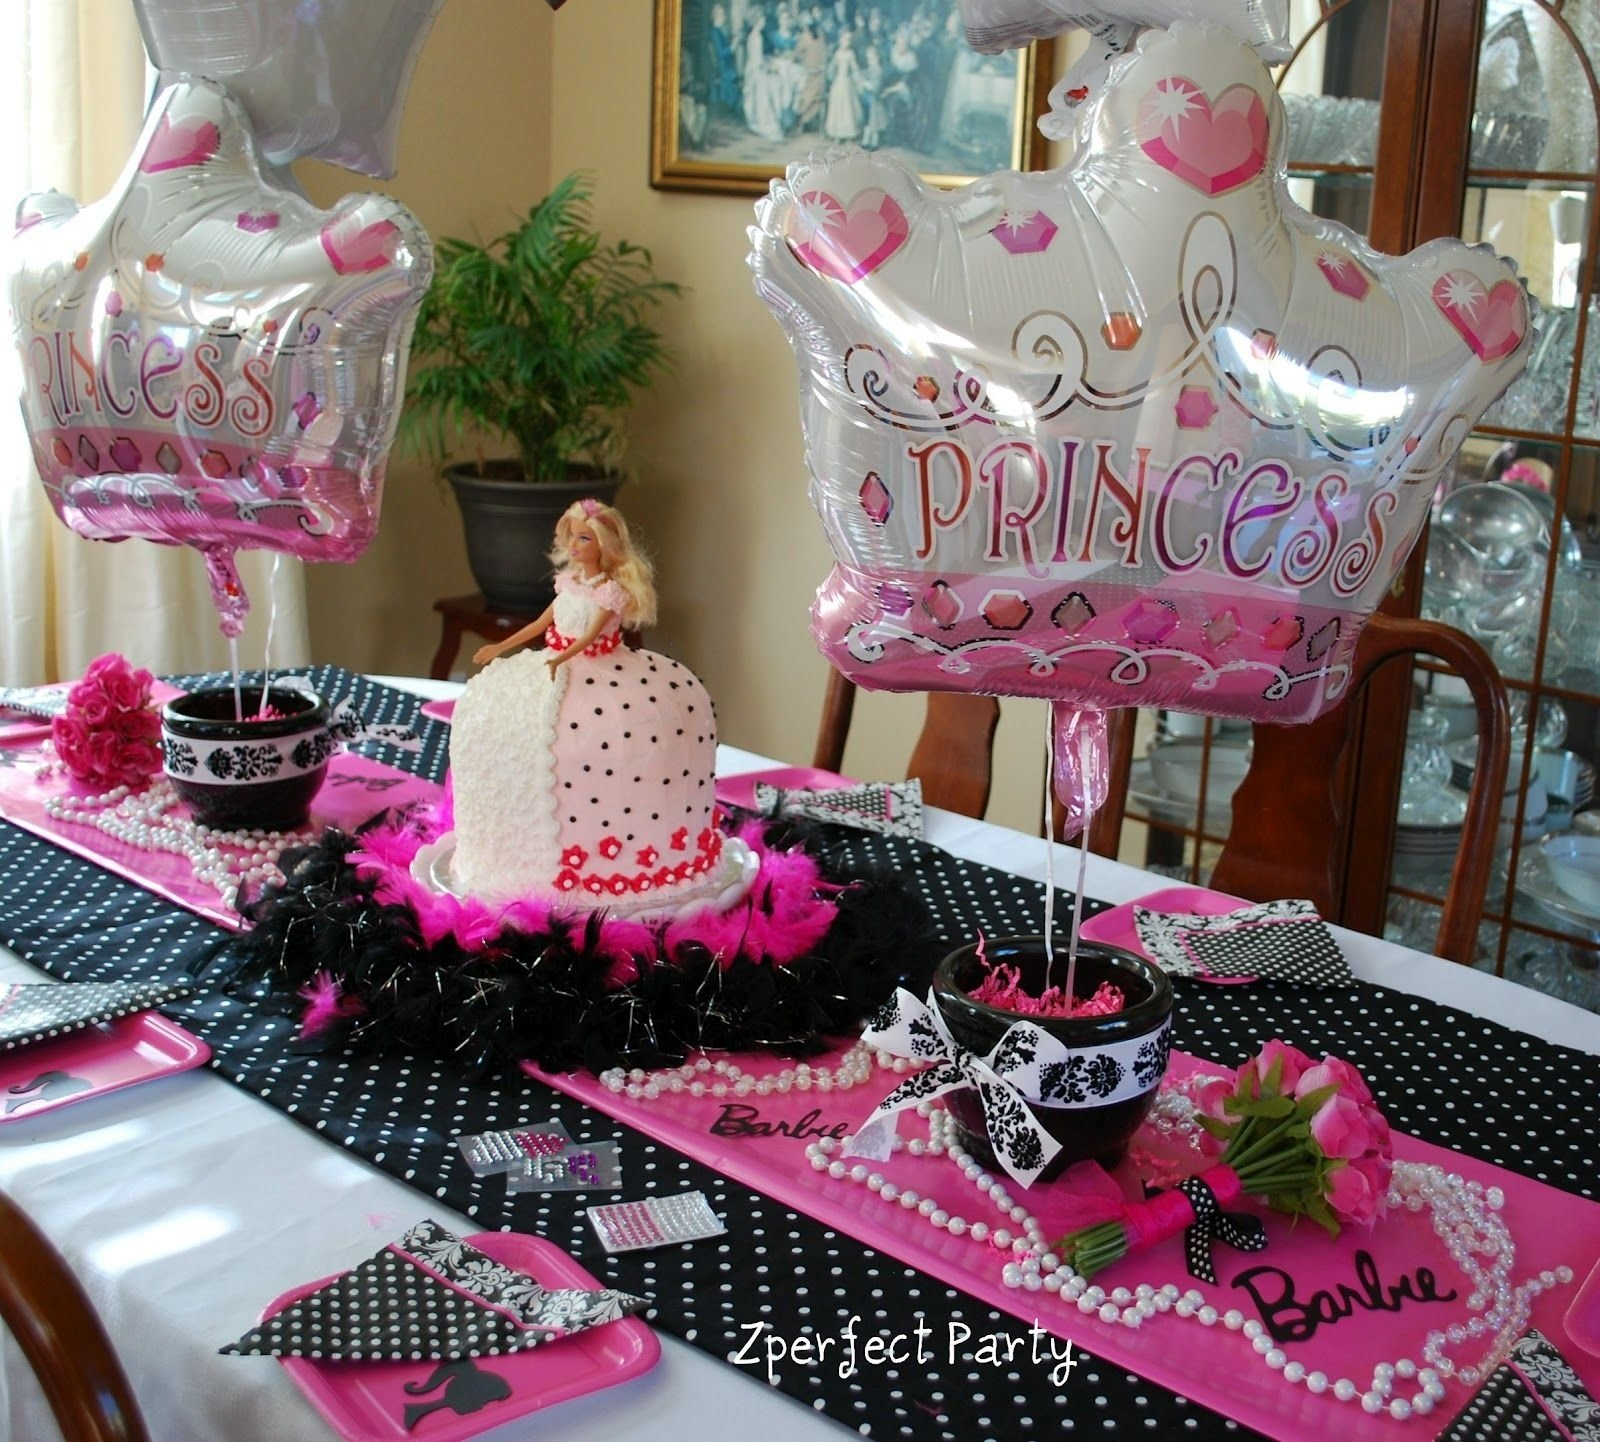 10 Spectacular Dress Up Birthday Party Ideas image detail for rock star party place barbie dress up games 2020